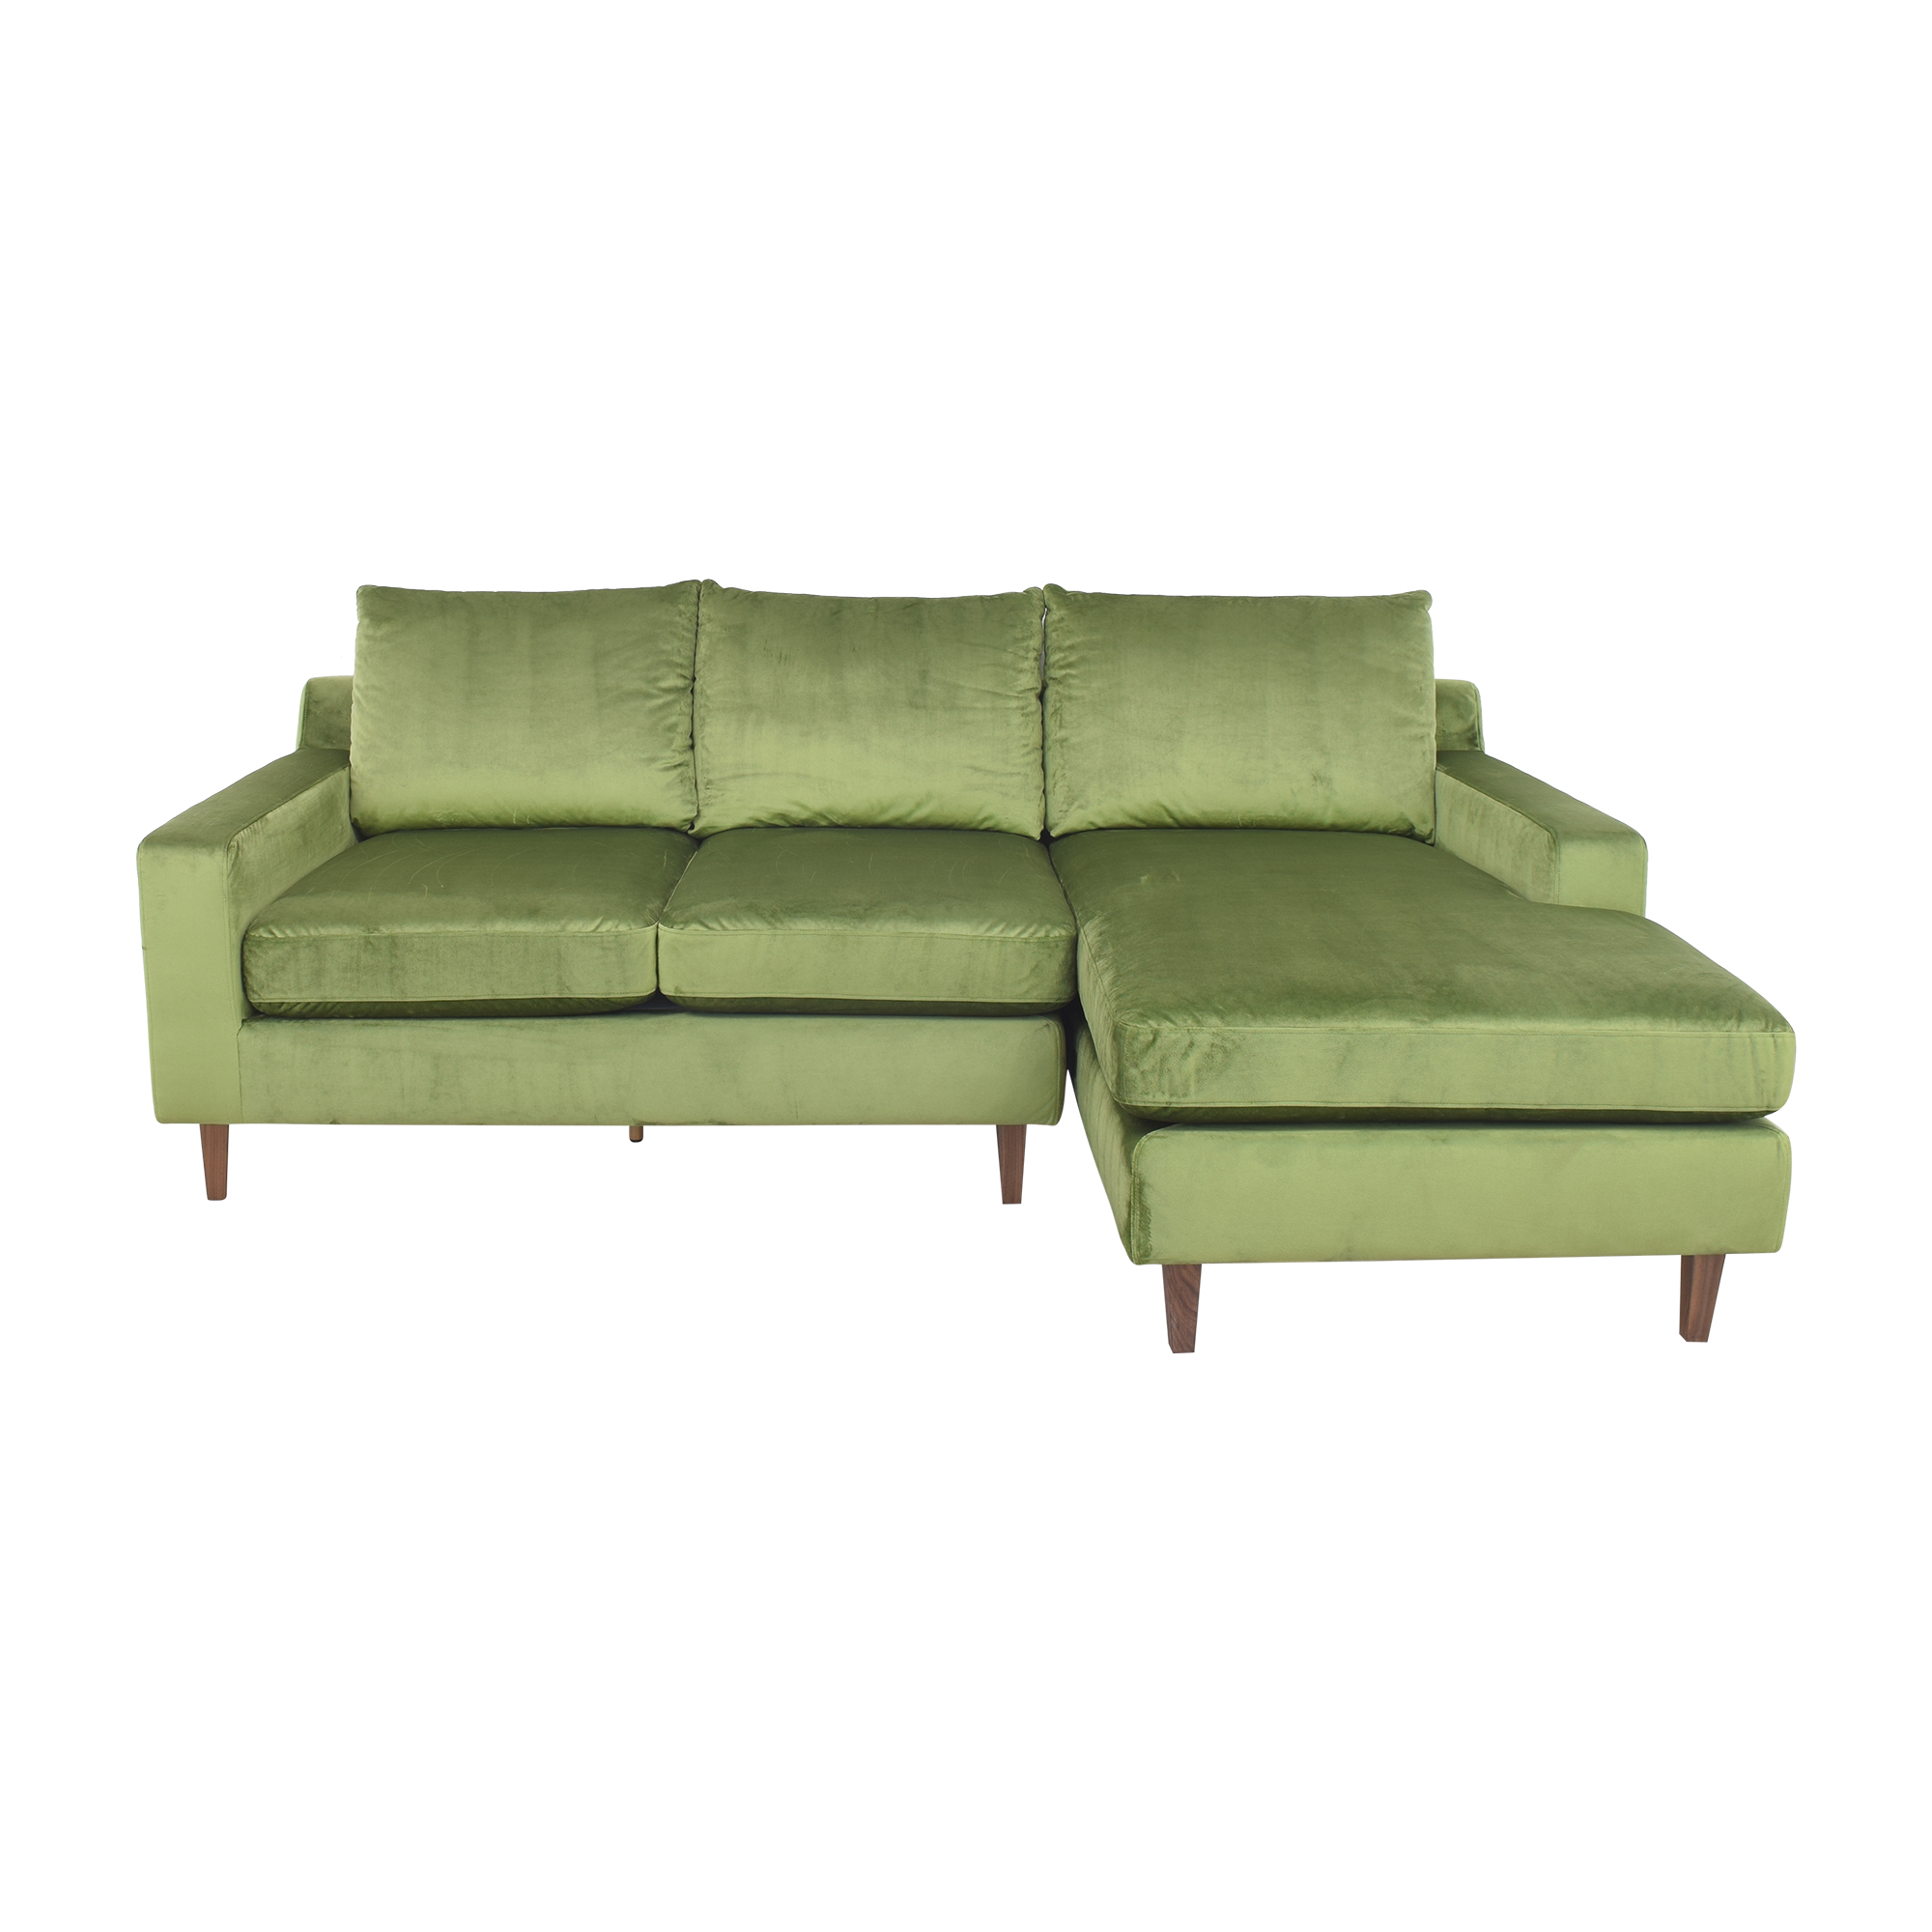 Interior Define Interior Define Sloan Sectional Sofa with Chaise ma